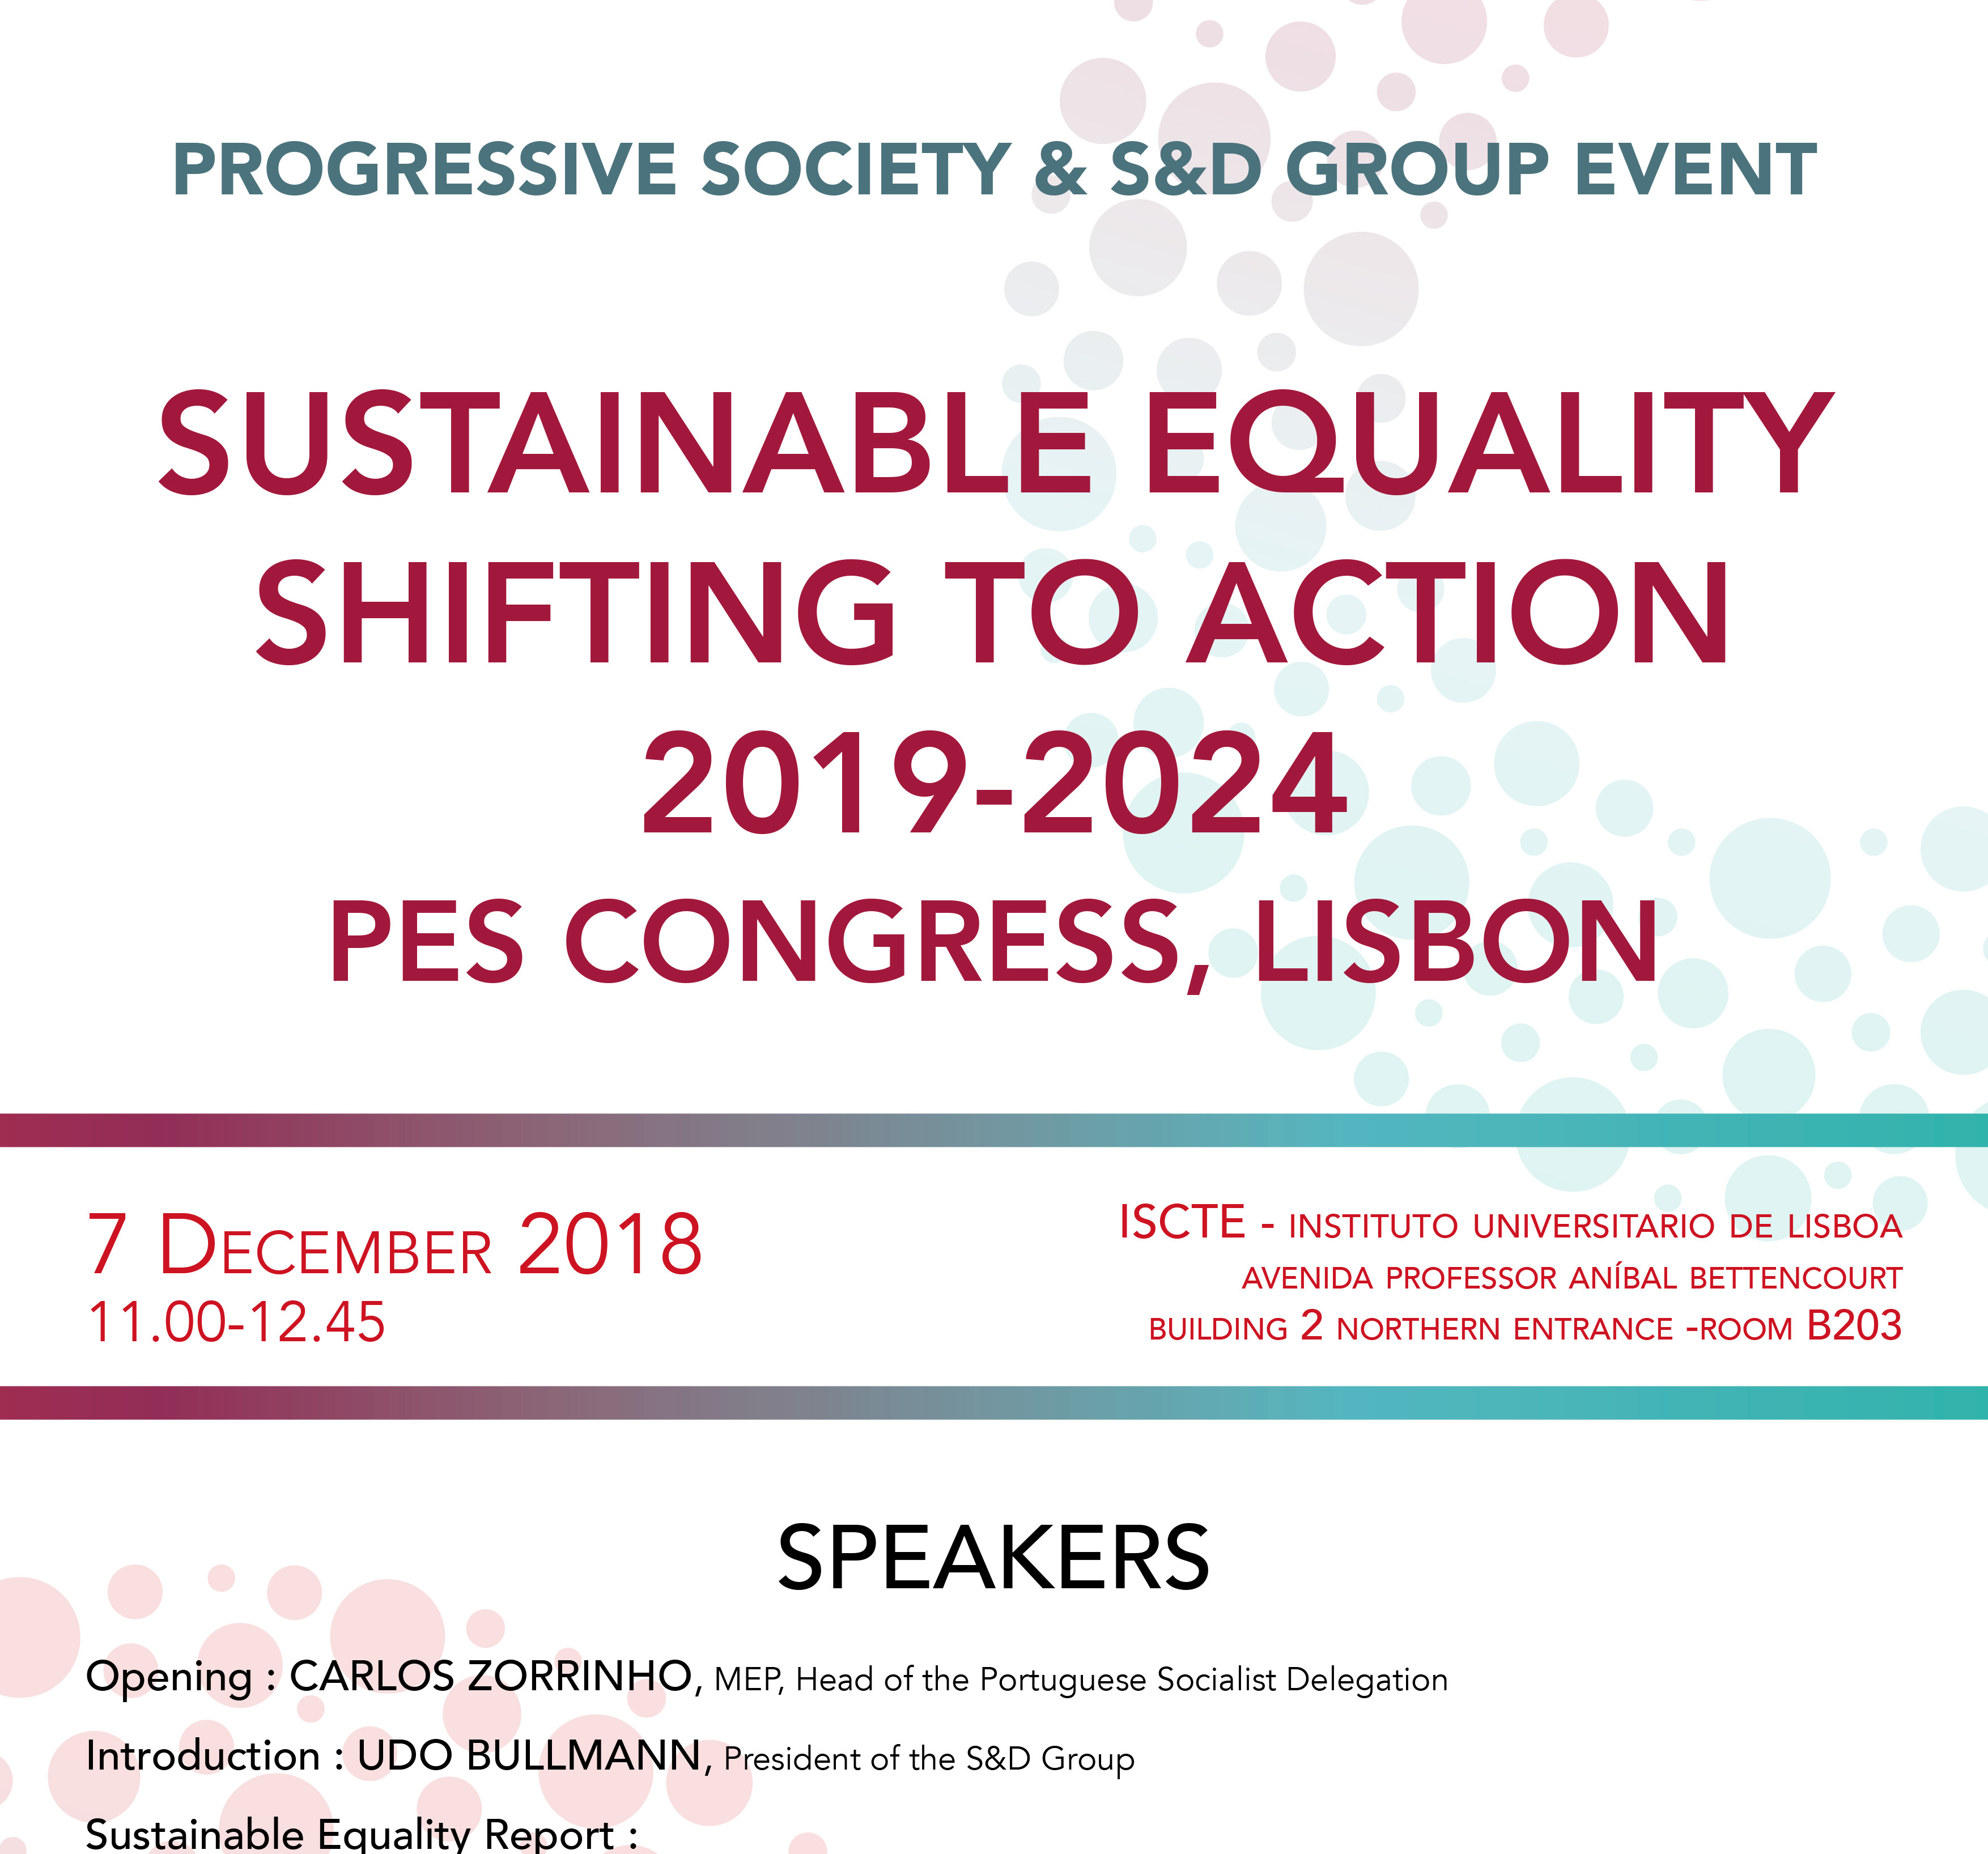 Sustainable Equality – Shifting to Action 2019-2024